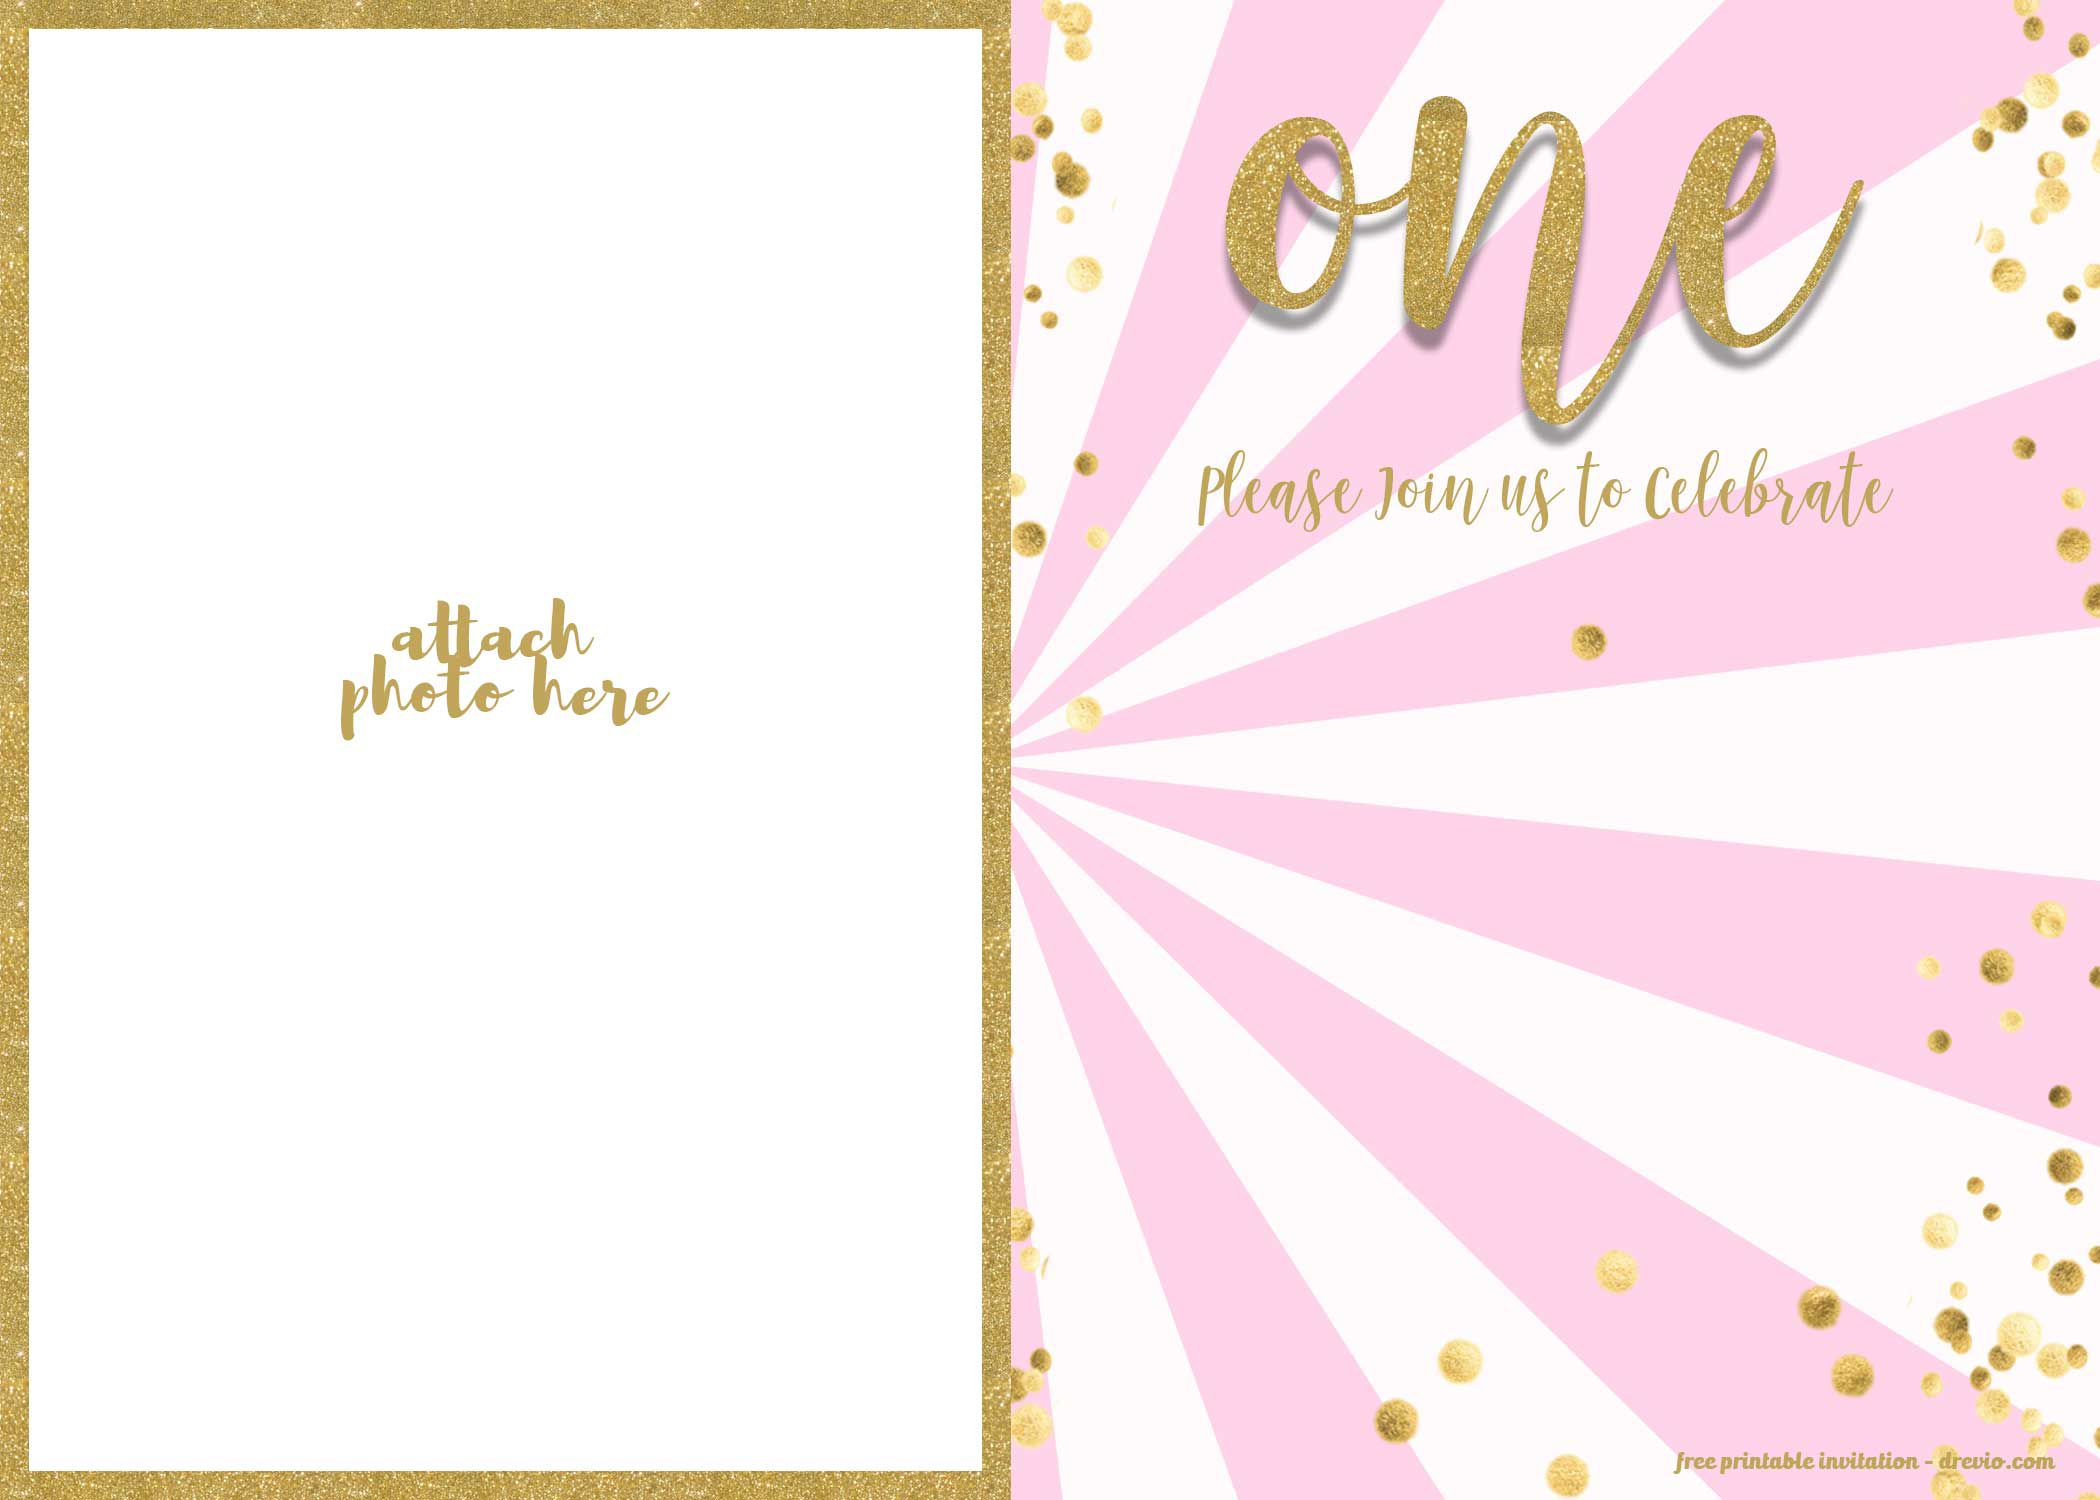 007 Incredible Free 1st Birthday Invitation Template For Word Photo Full